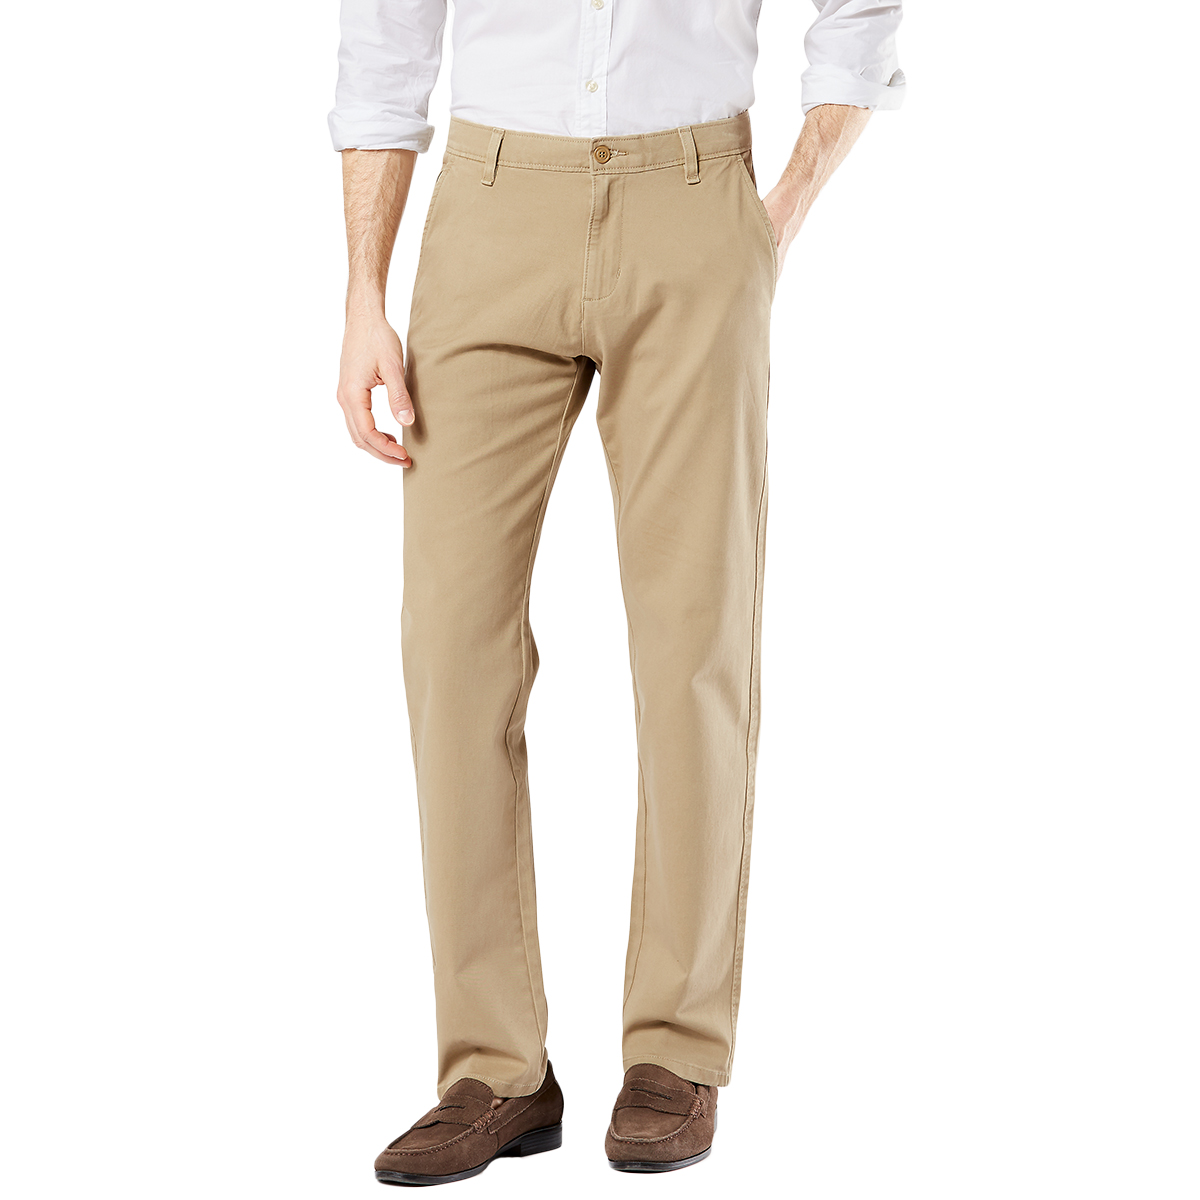 Dockers Men's Ultimate Chino Pants - Brown, 29/30